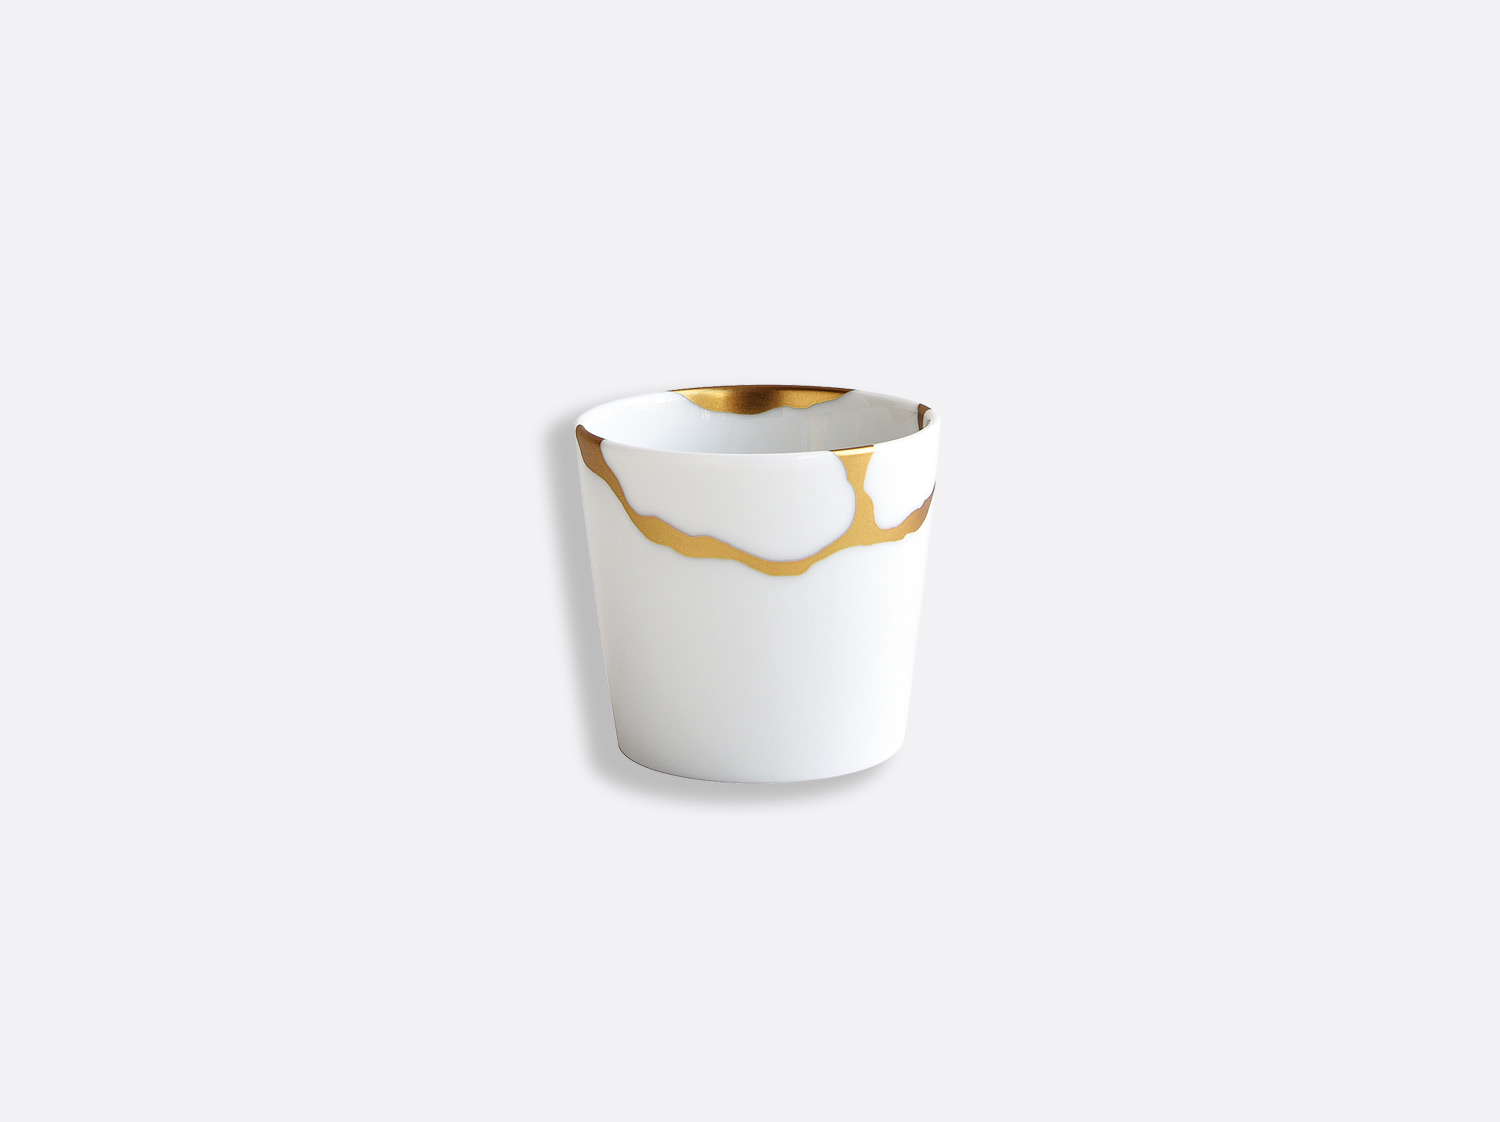 China Sugar bowl 2 oz of the collection Kintsugi | Bernardaud